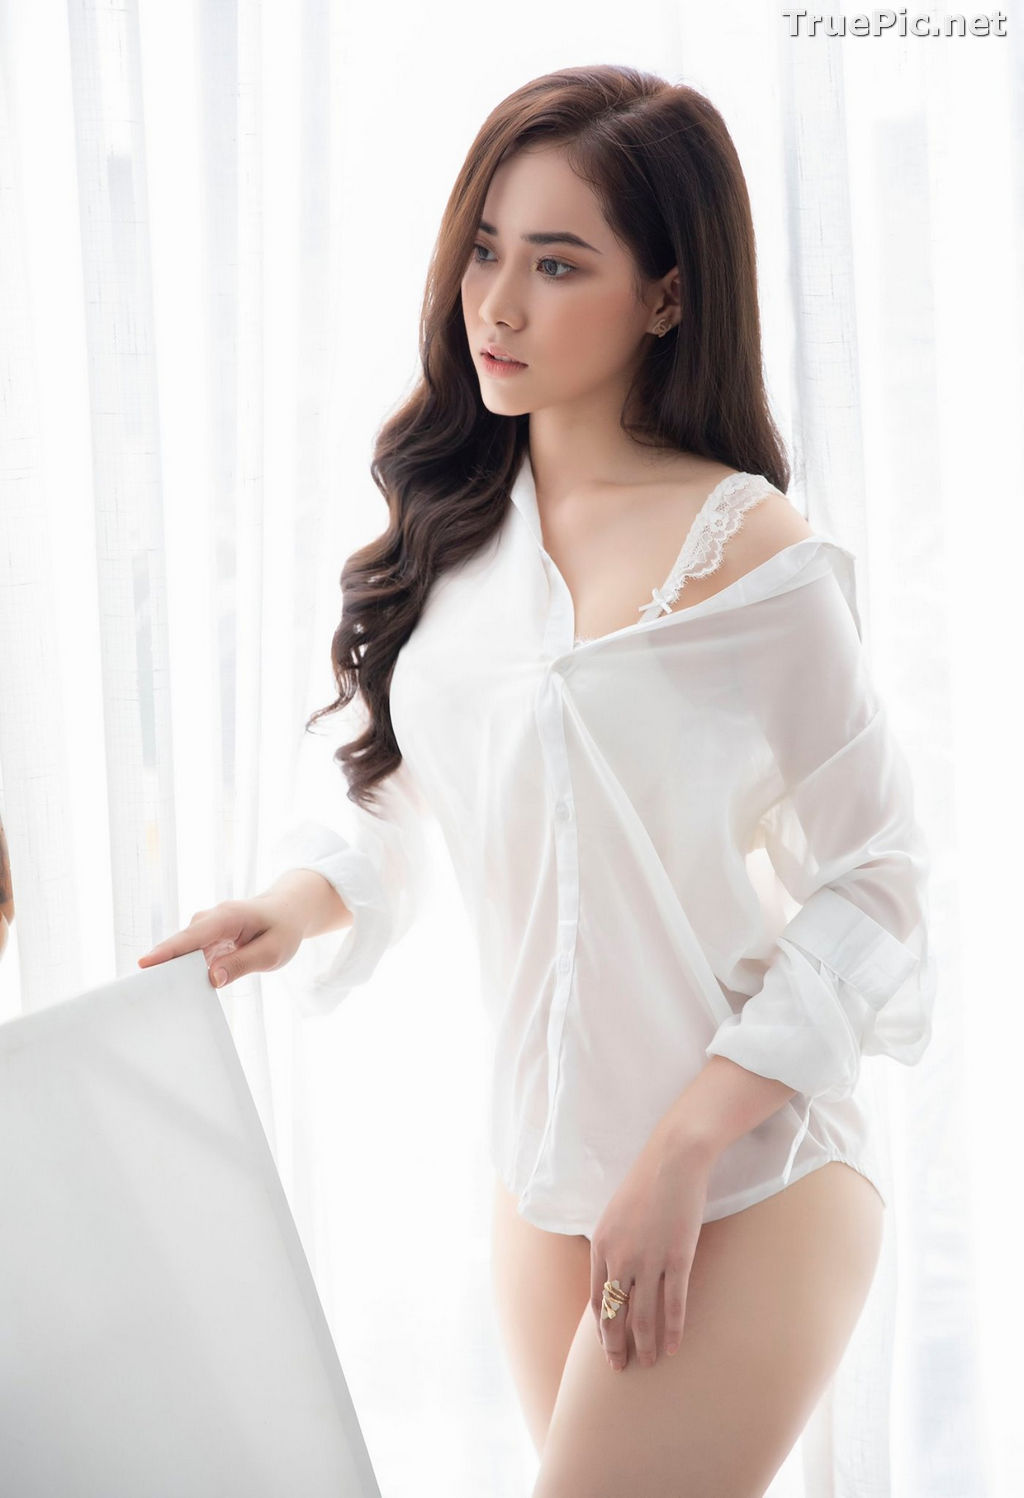 Image Vietnamese Model - Hot Beautiful Girls In White Collection - TruePic.net - Picture-9